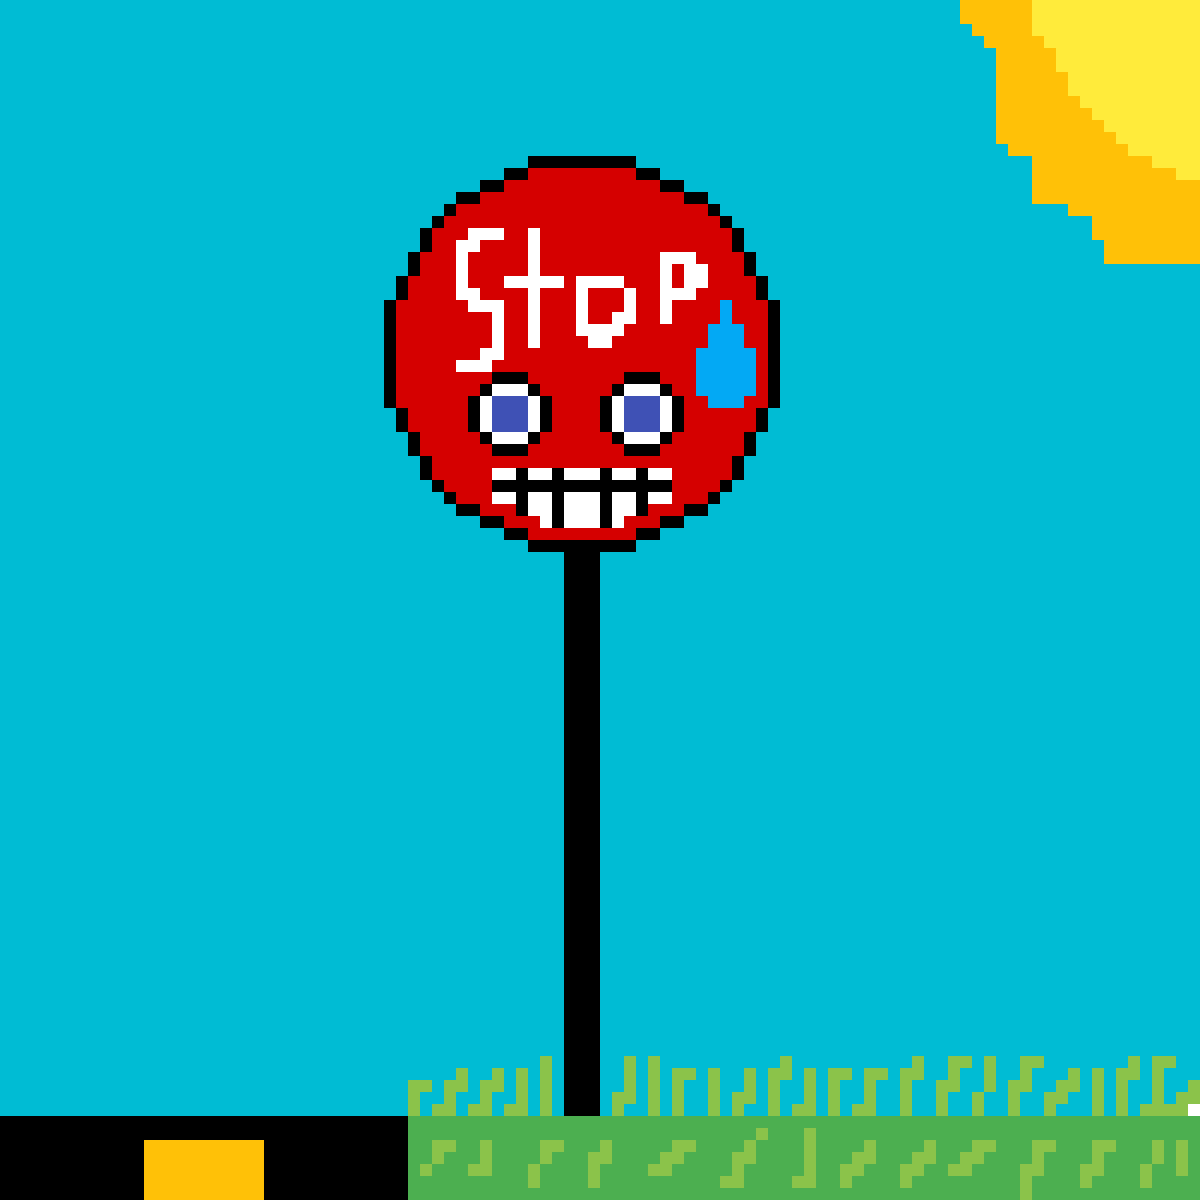 nervous stop sign  by DayD06